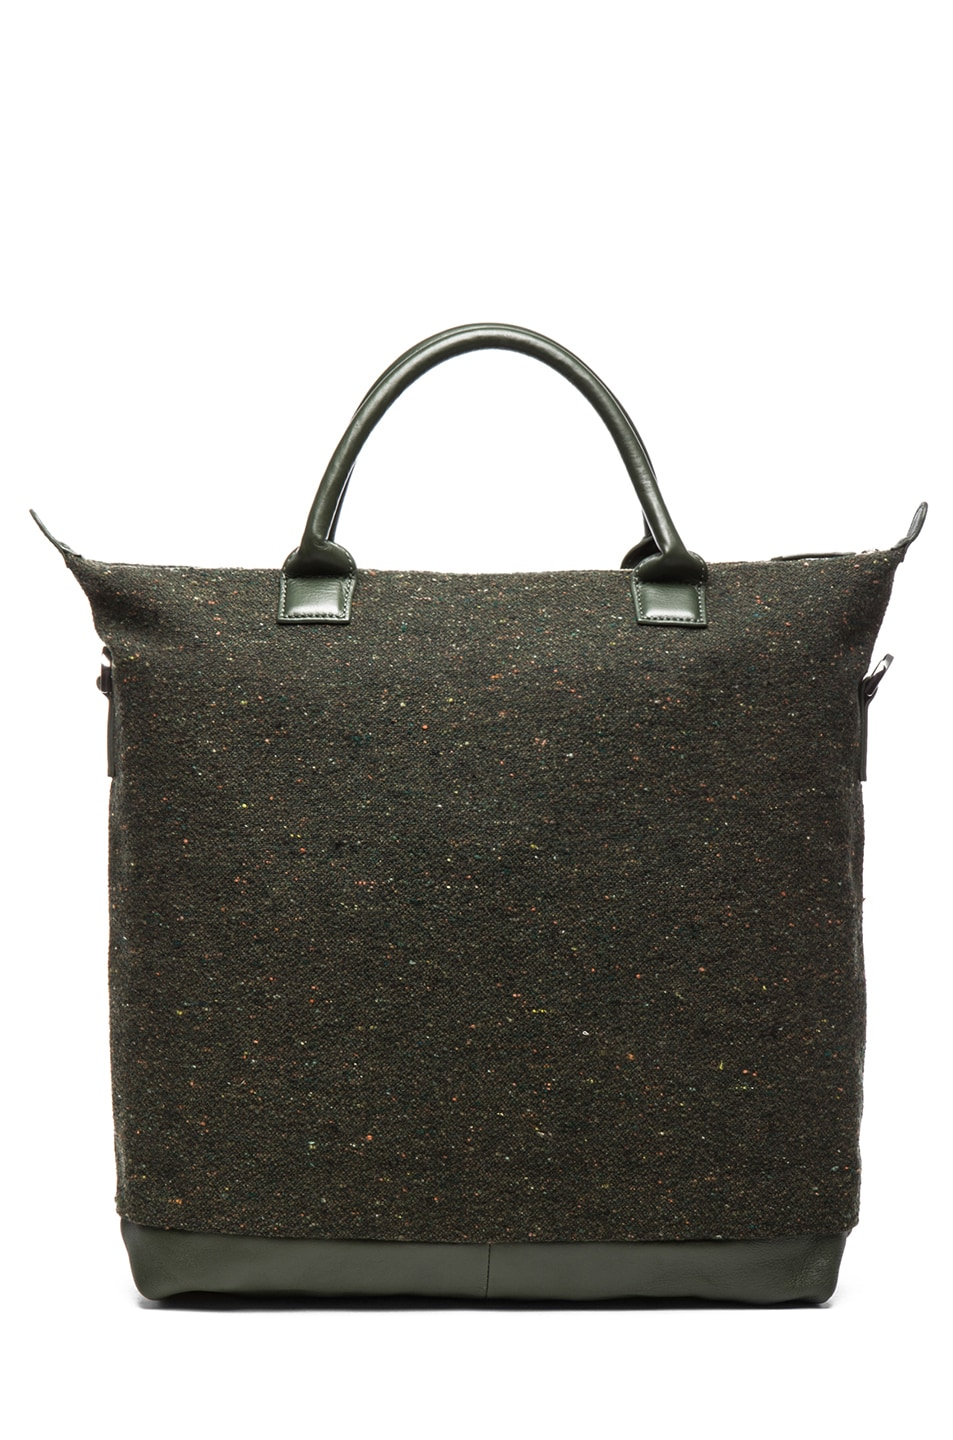 Image 2 of Want Les Essentiels De La Vie O'Hare Shopper Tote in Spruce Fire & Moss